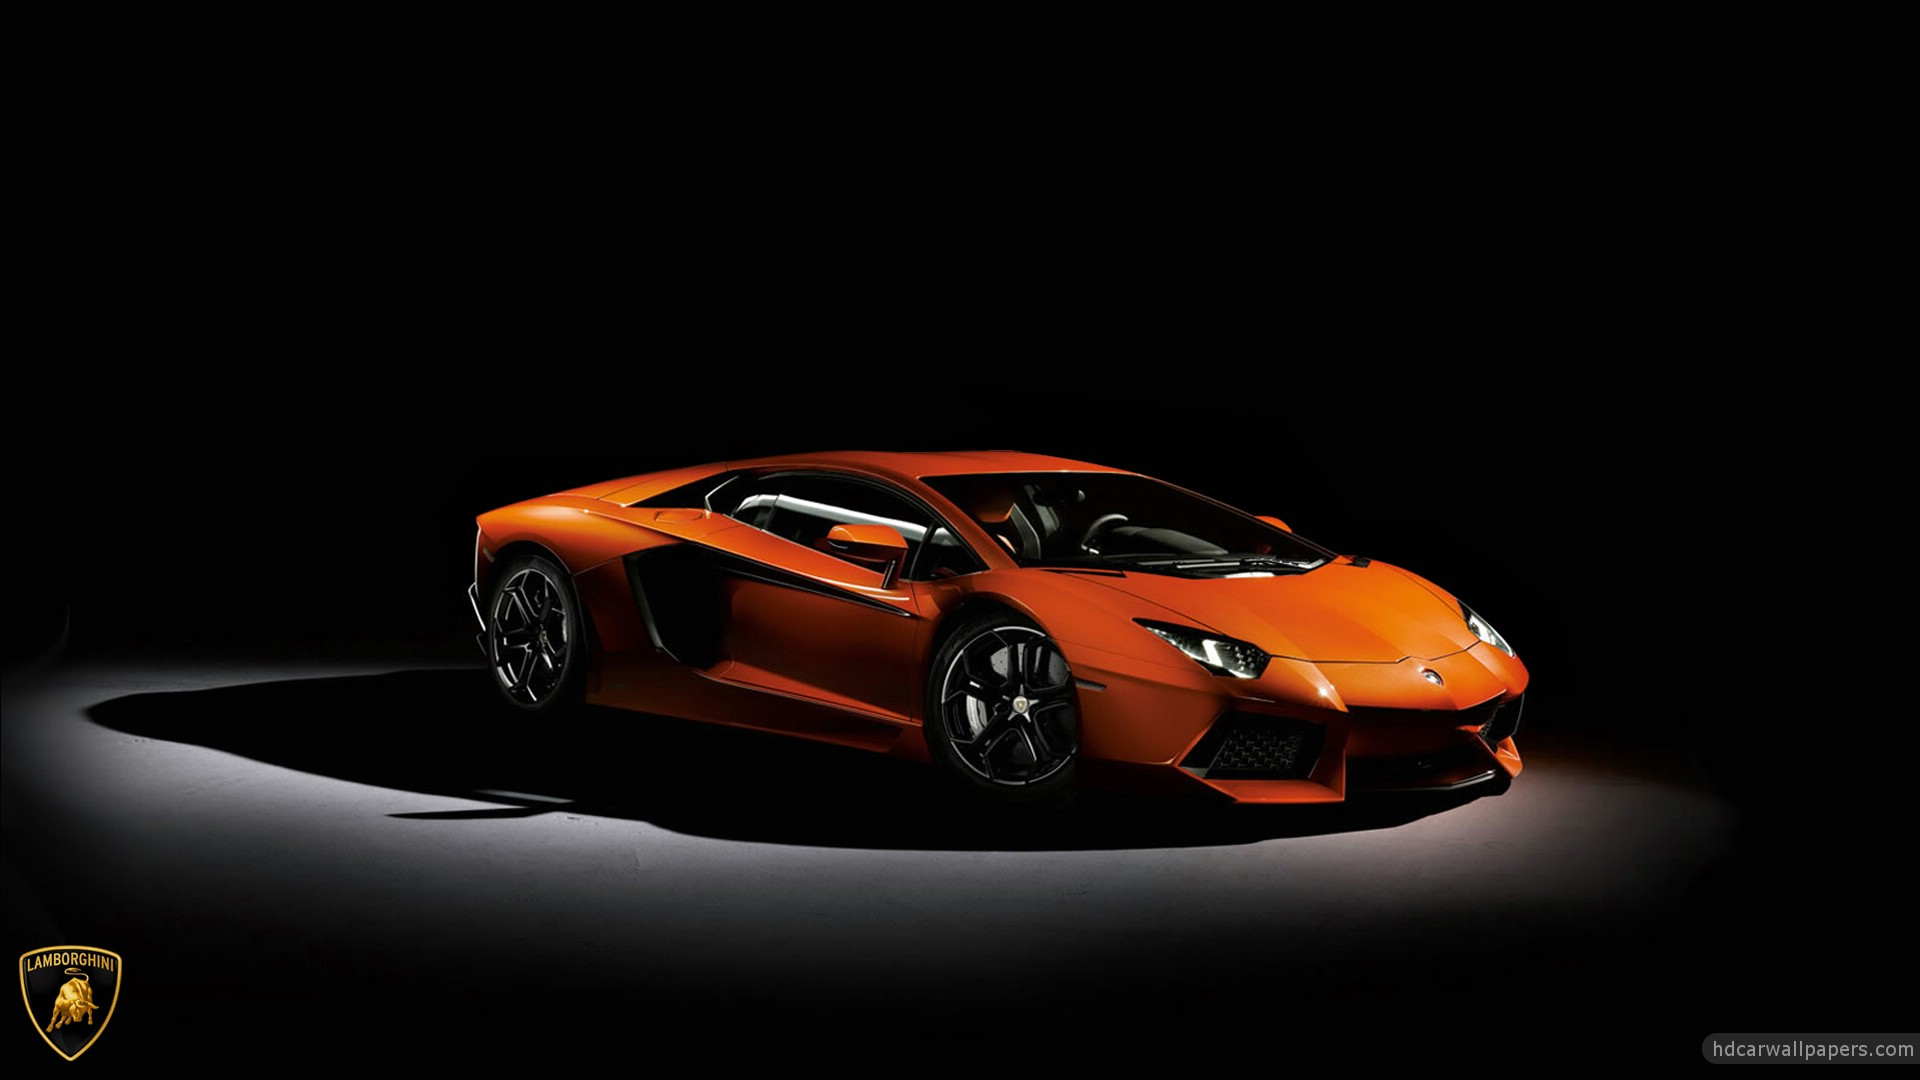 Lamborghini Aventador HD Wallpaper HD Car Wallpapers 1920x1080